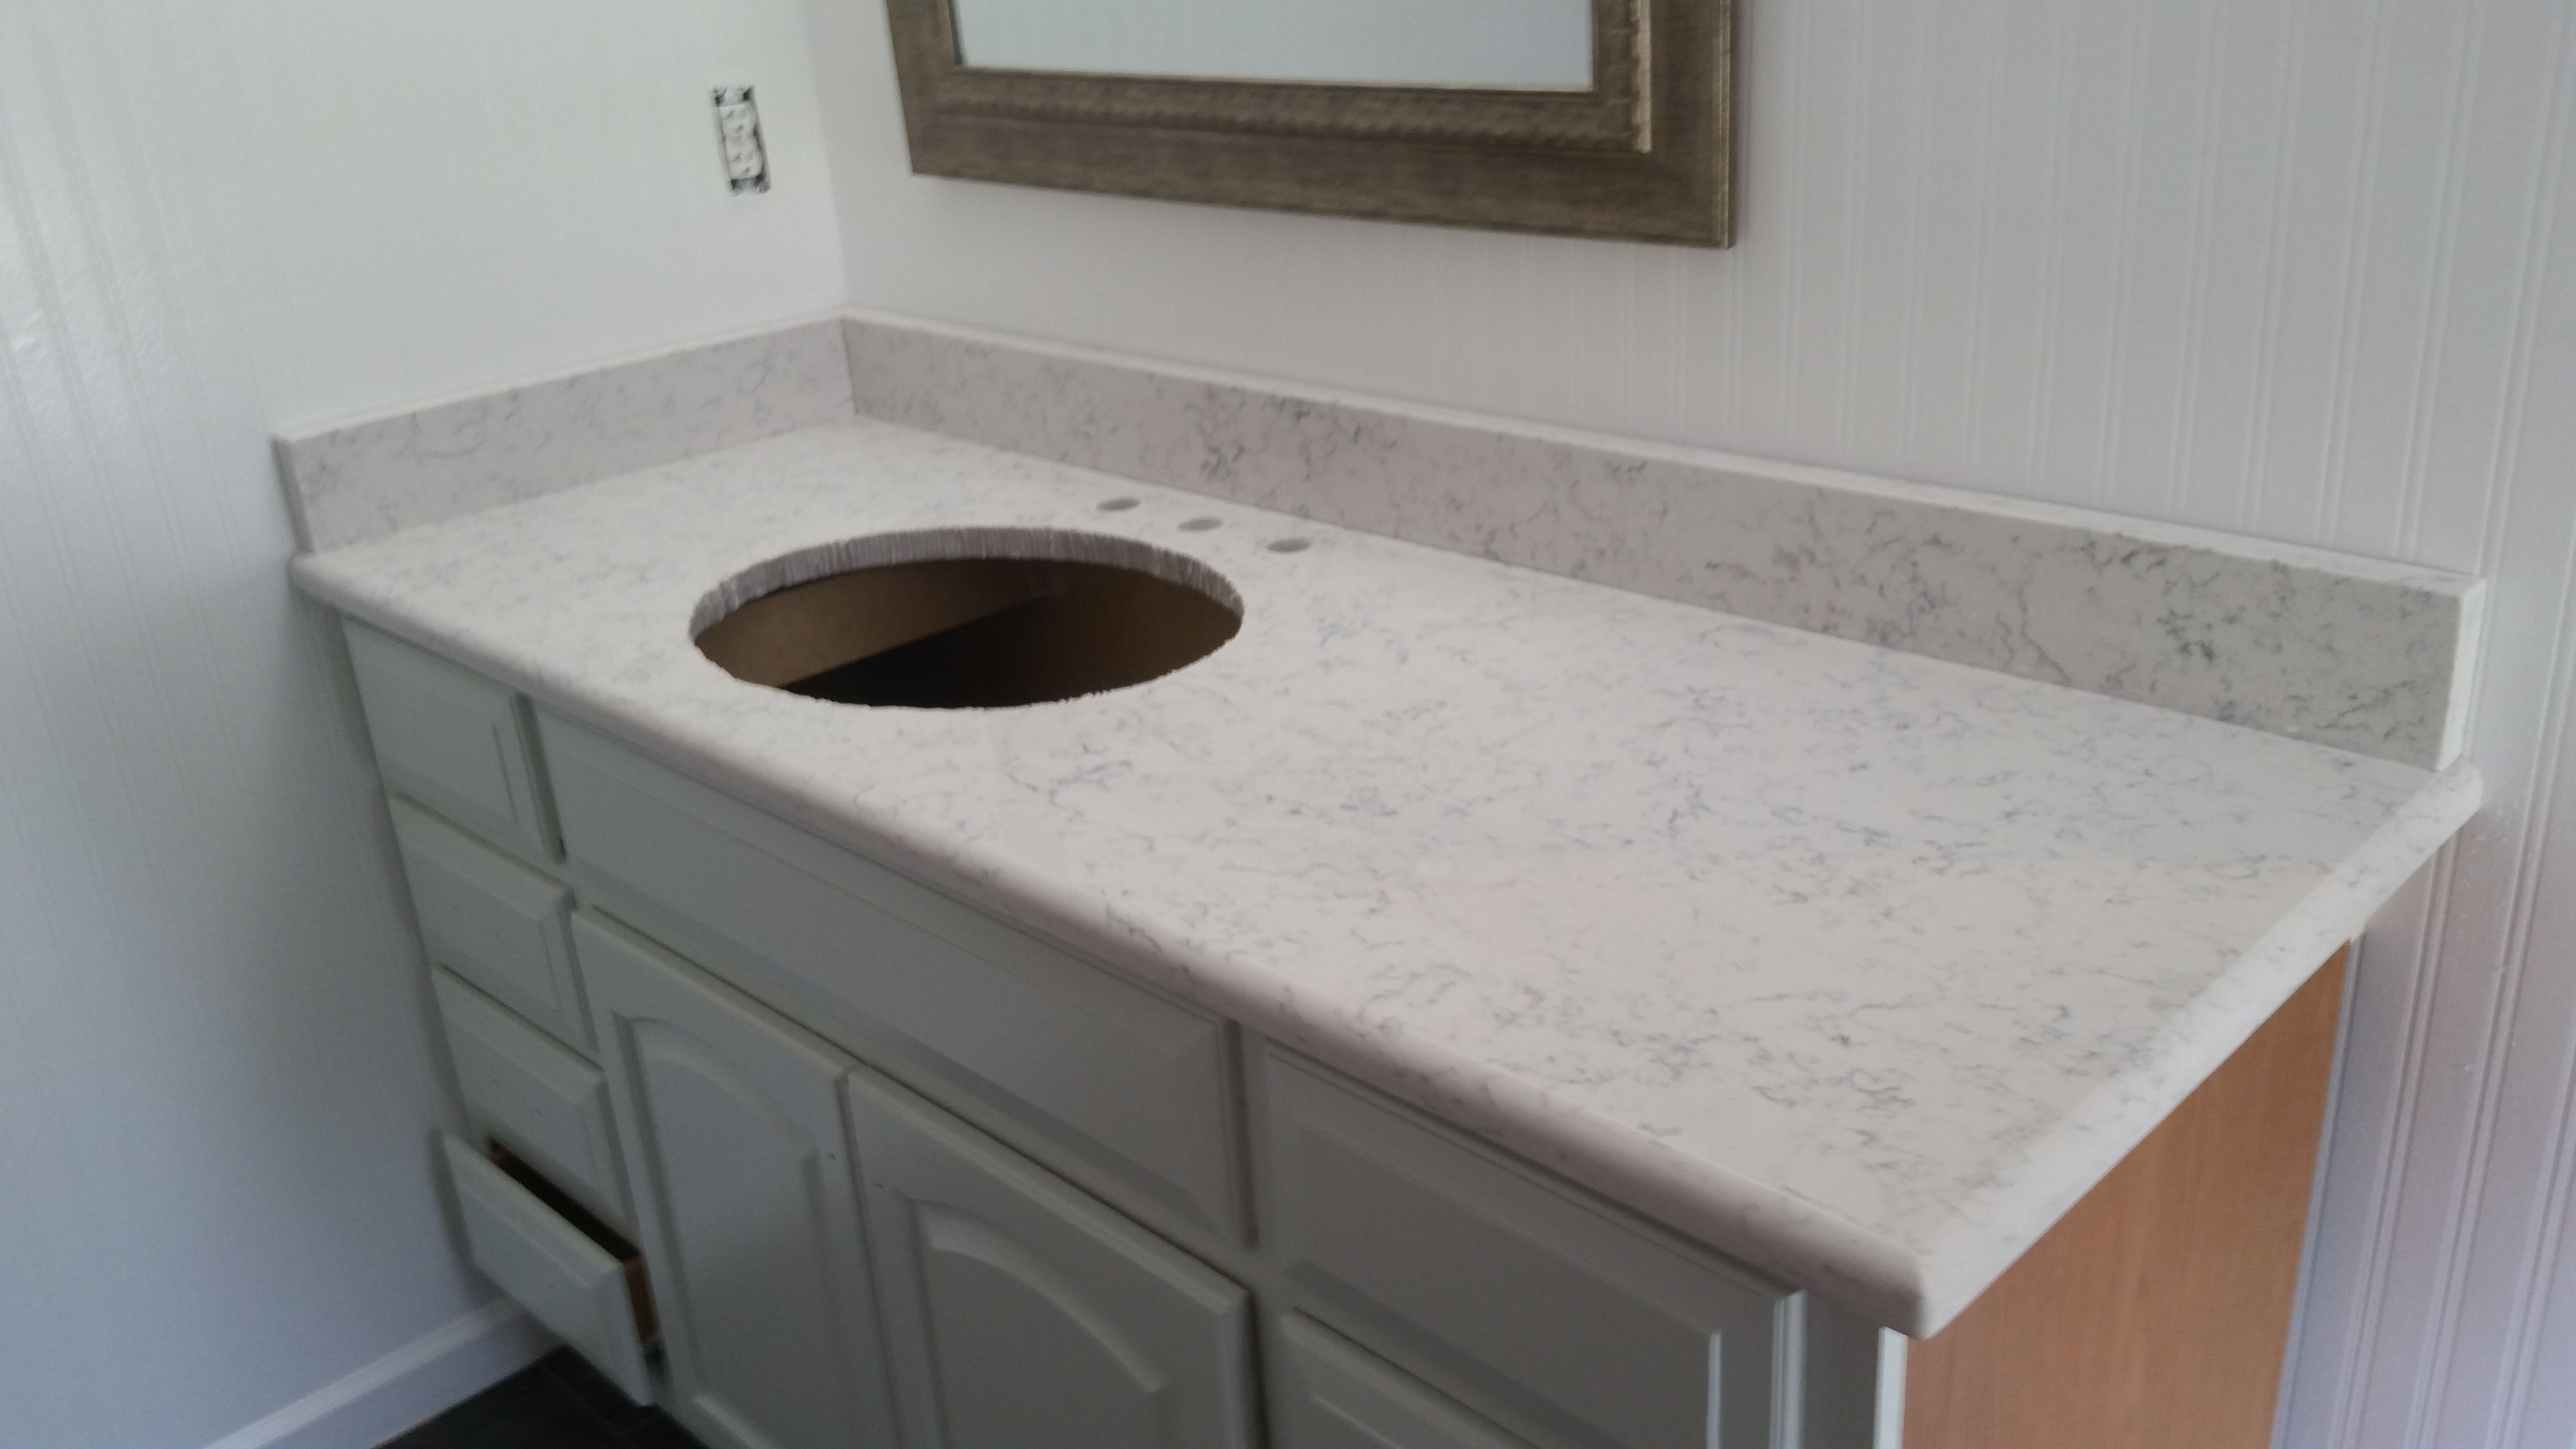 lyra silestone quartz granite bathroom vanity install for the spaulding family knoxvilles stone interiors